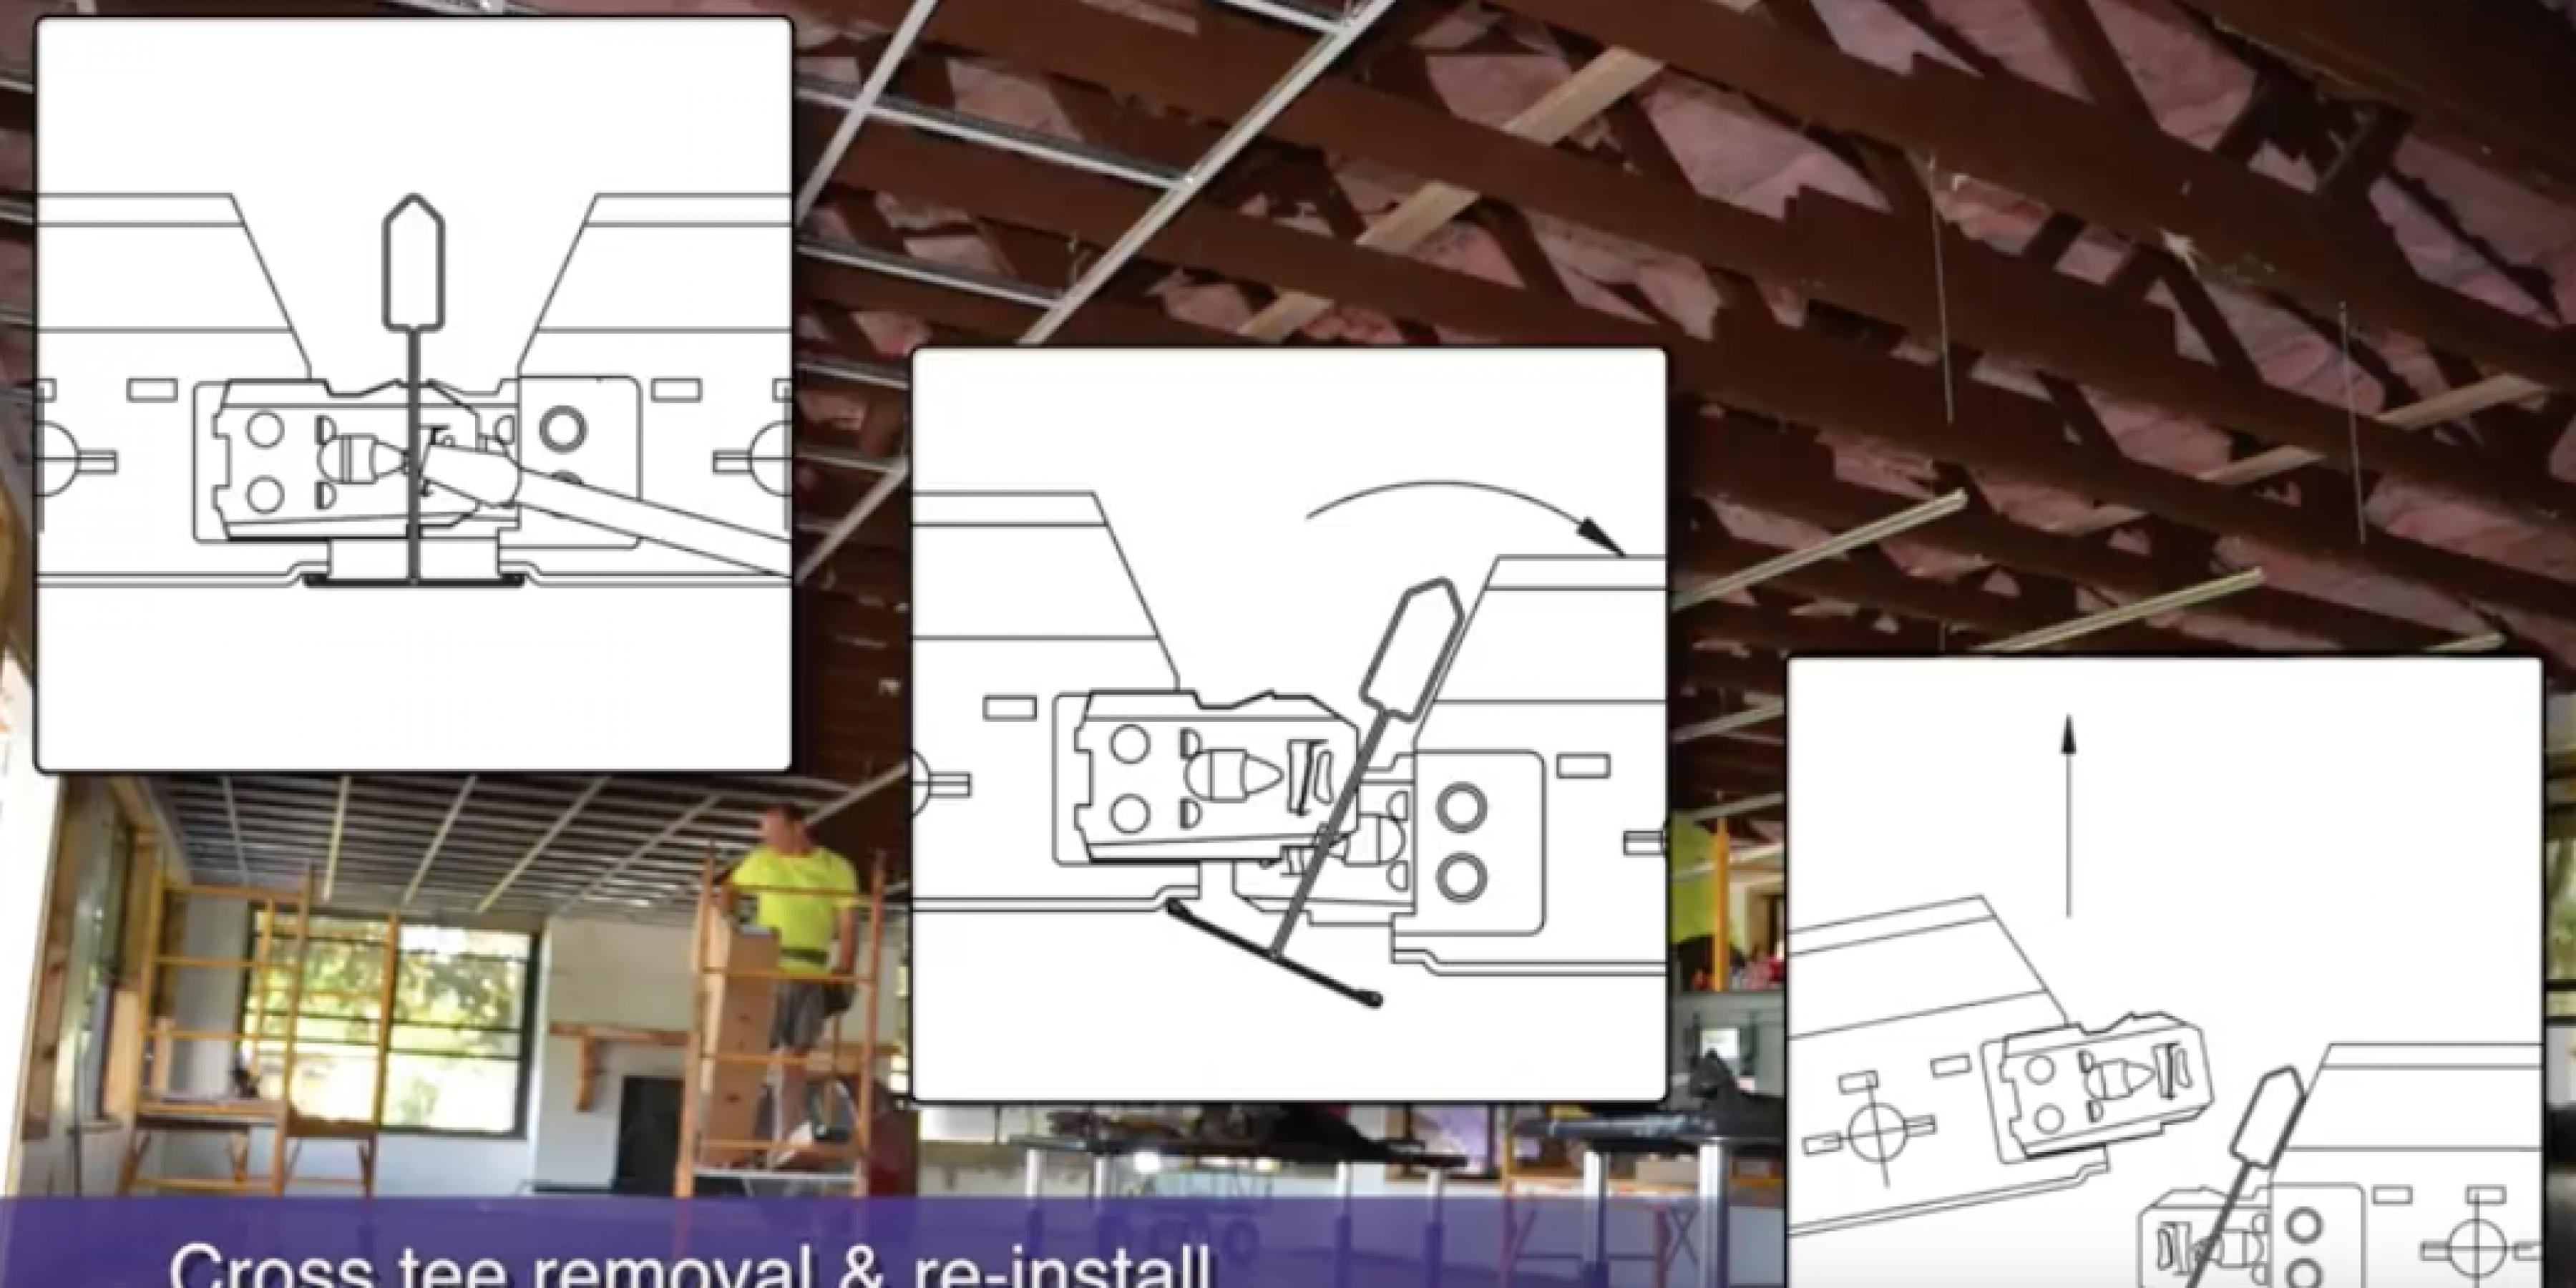 How to stab, remove & re install acoustical cross tees